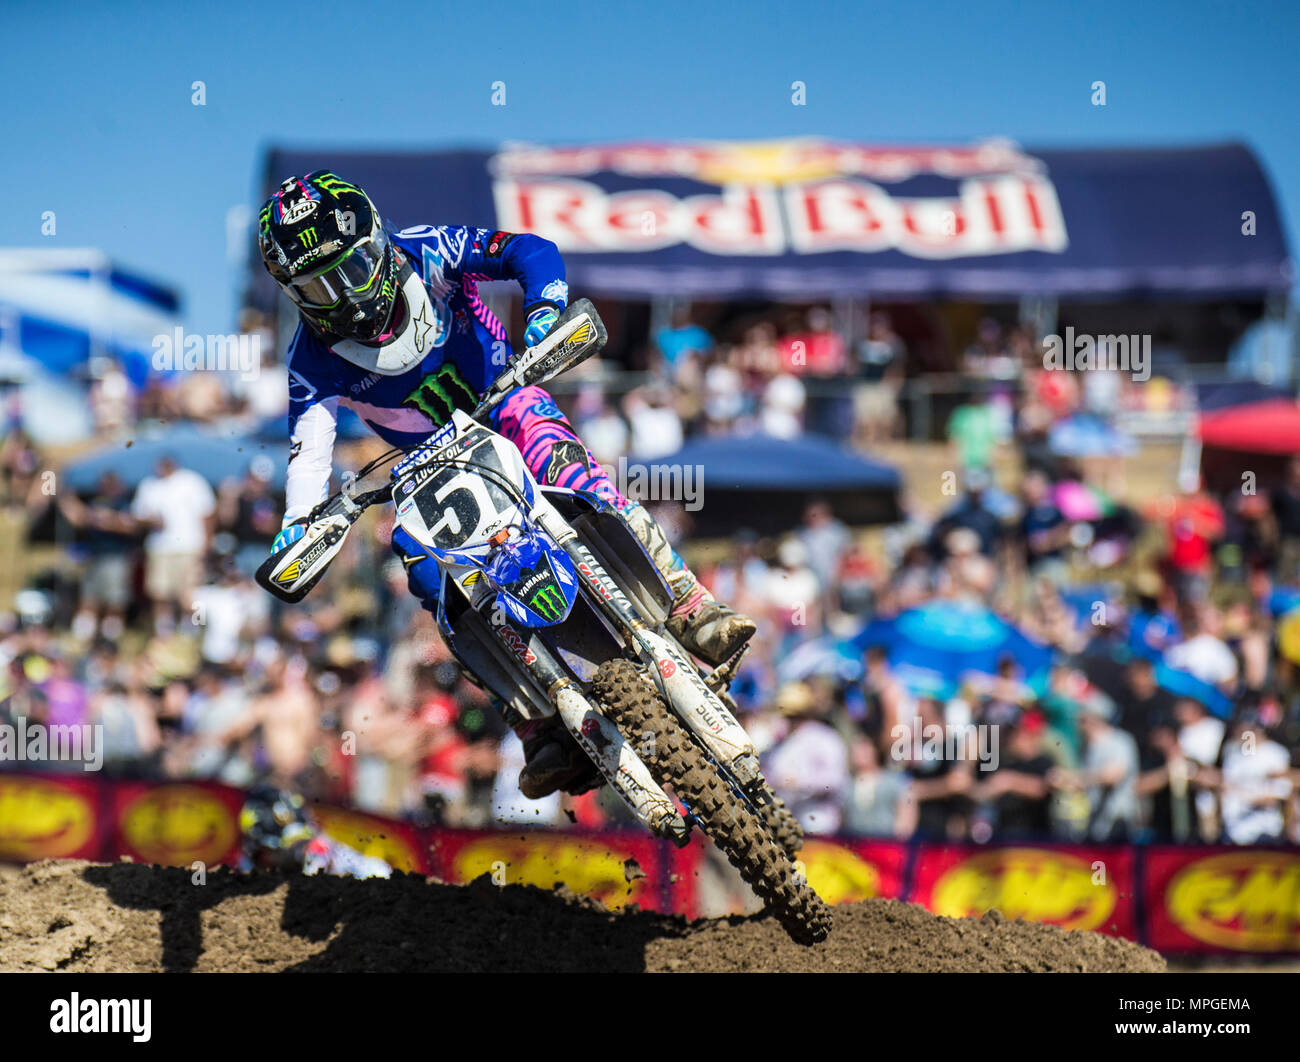 Rancho Cordova, CA. 19th May, 2018. # 51 Justin Barcia earned his first podium finish since 2016 in third place during the Lucas Oil Pro Motocross Championship 450cc class championship at Hangtown Motocross Classic Rancho Cordova, CA Thurman James/CSM/Alamy Live News - Stock Image